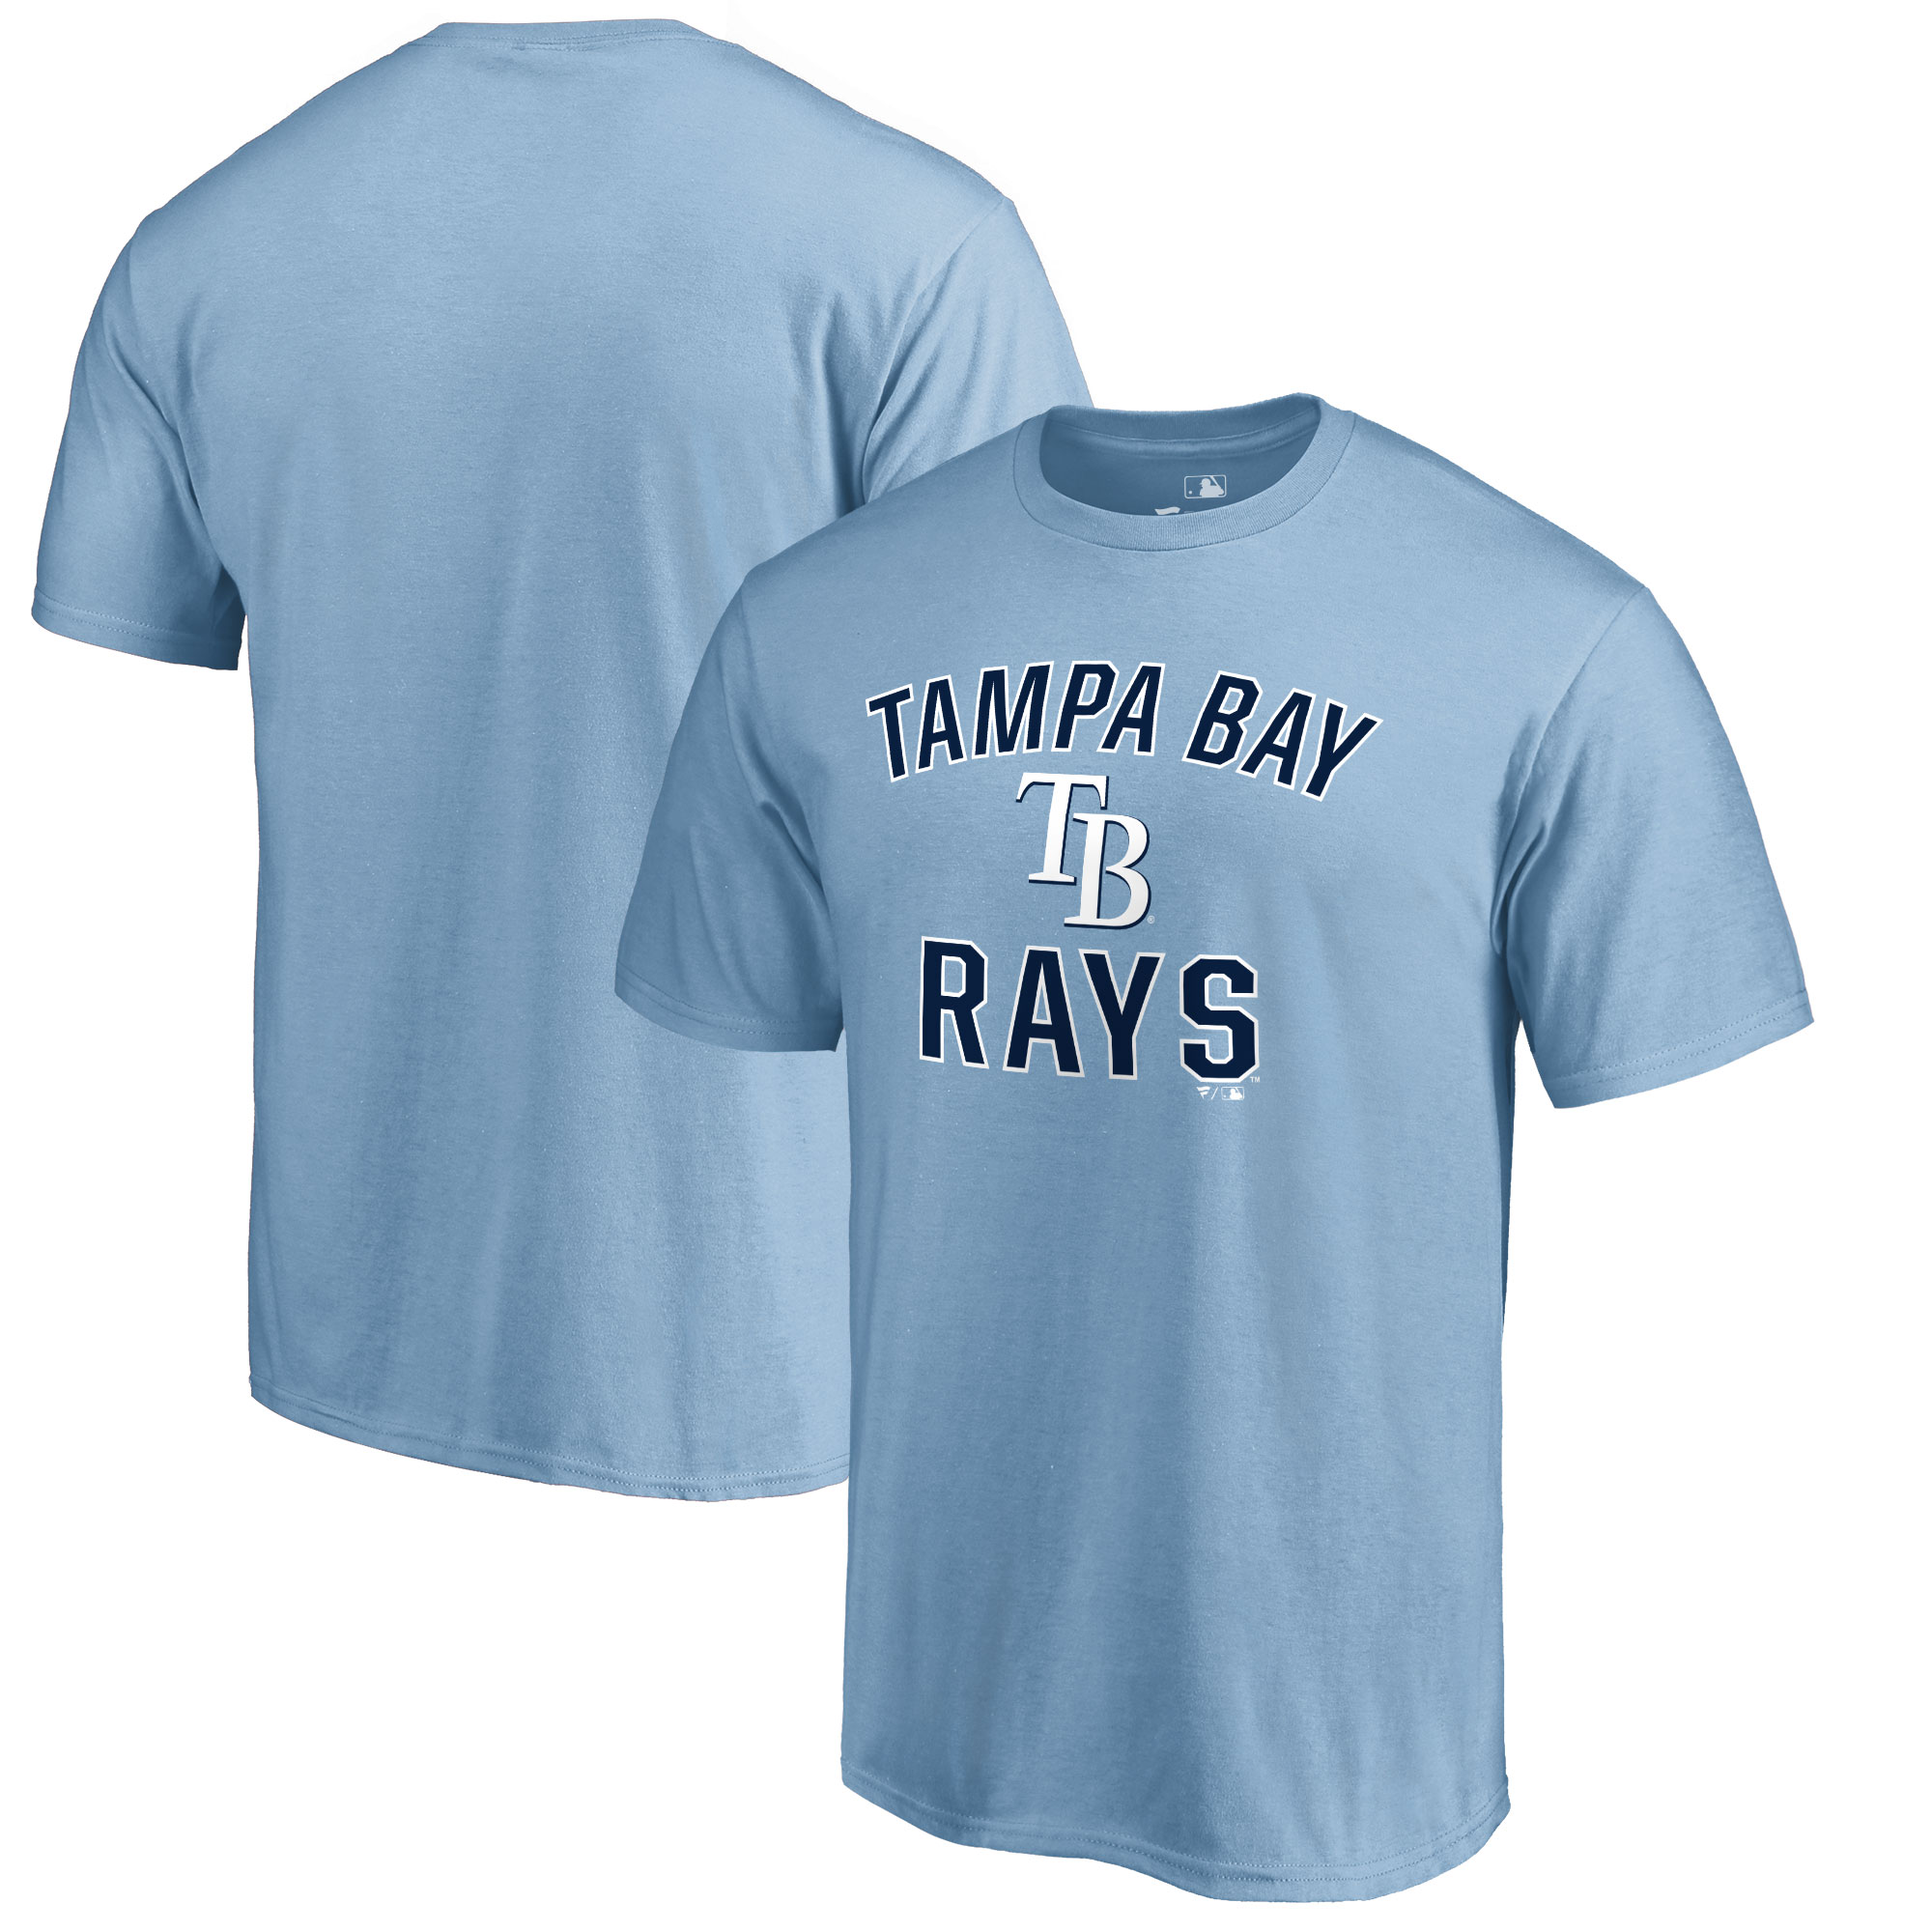 Tampa Bay Rays Victory Arch T-Shirt - Light Blue